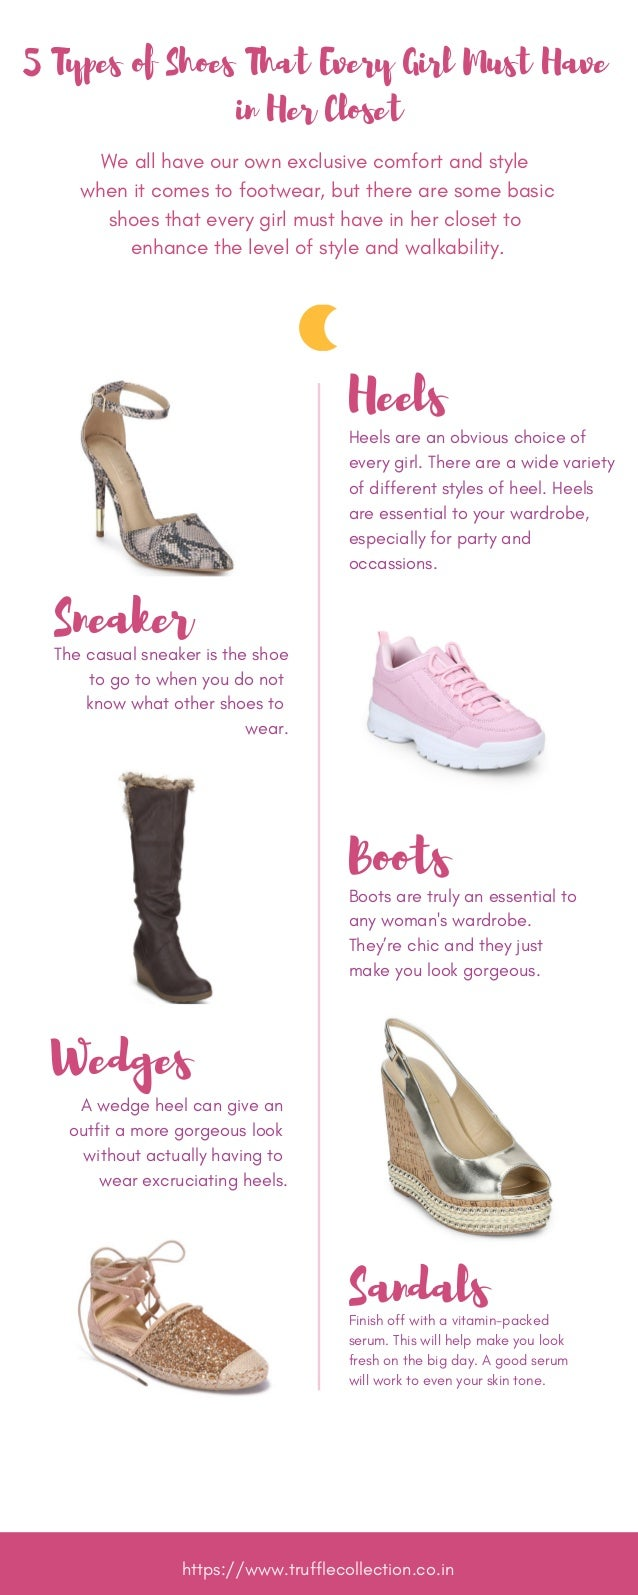 305e22511 5 Types of Shoes That Every Girl Must Have in Her Closet